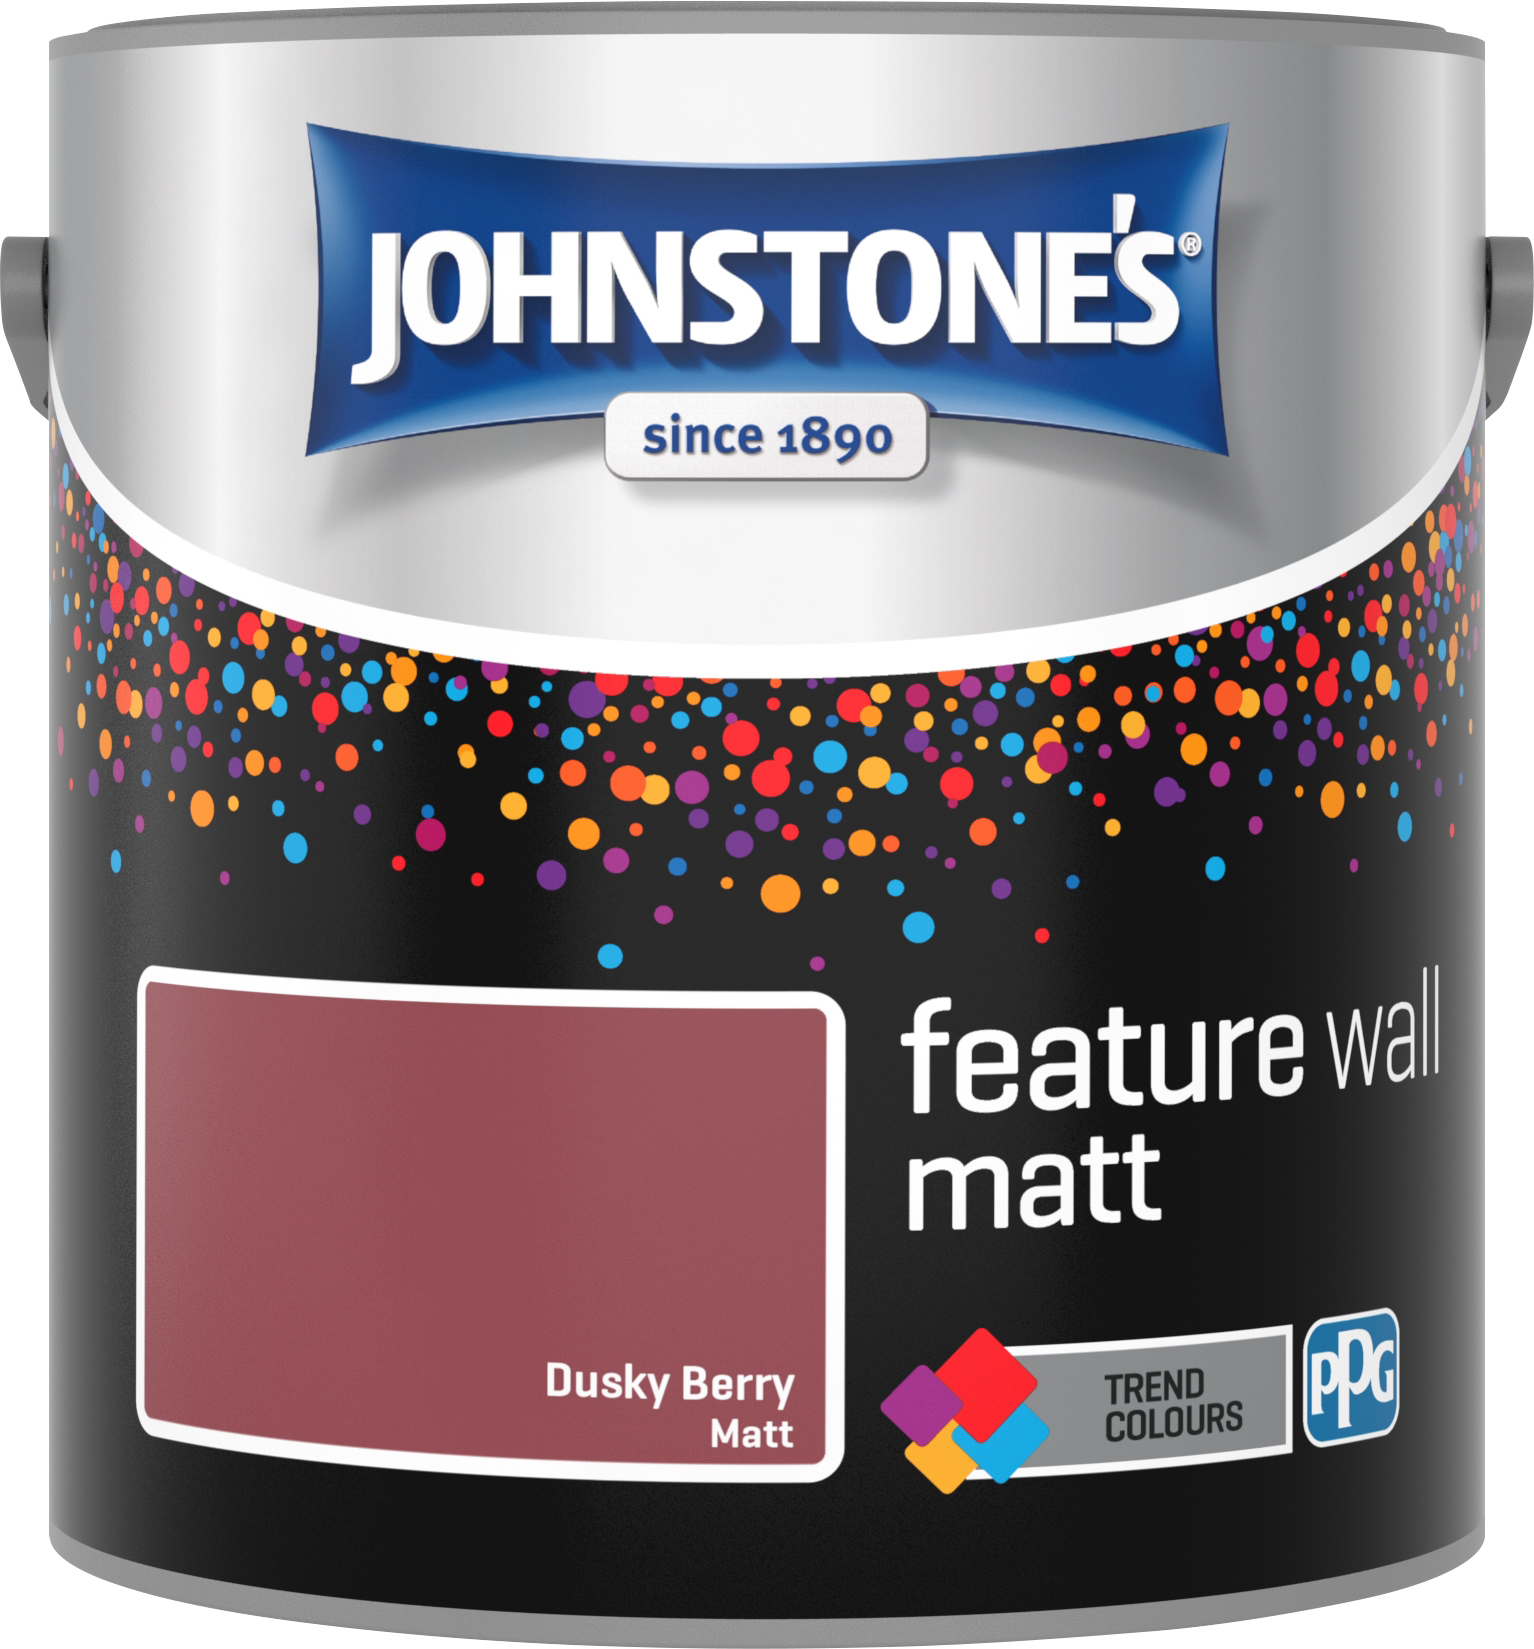 Johnstone's 2.5 Litre Feature Wall Matt Emulsion Paint - Dusk Berry